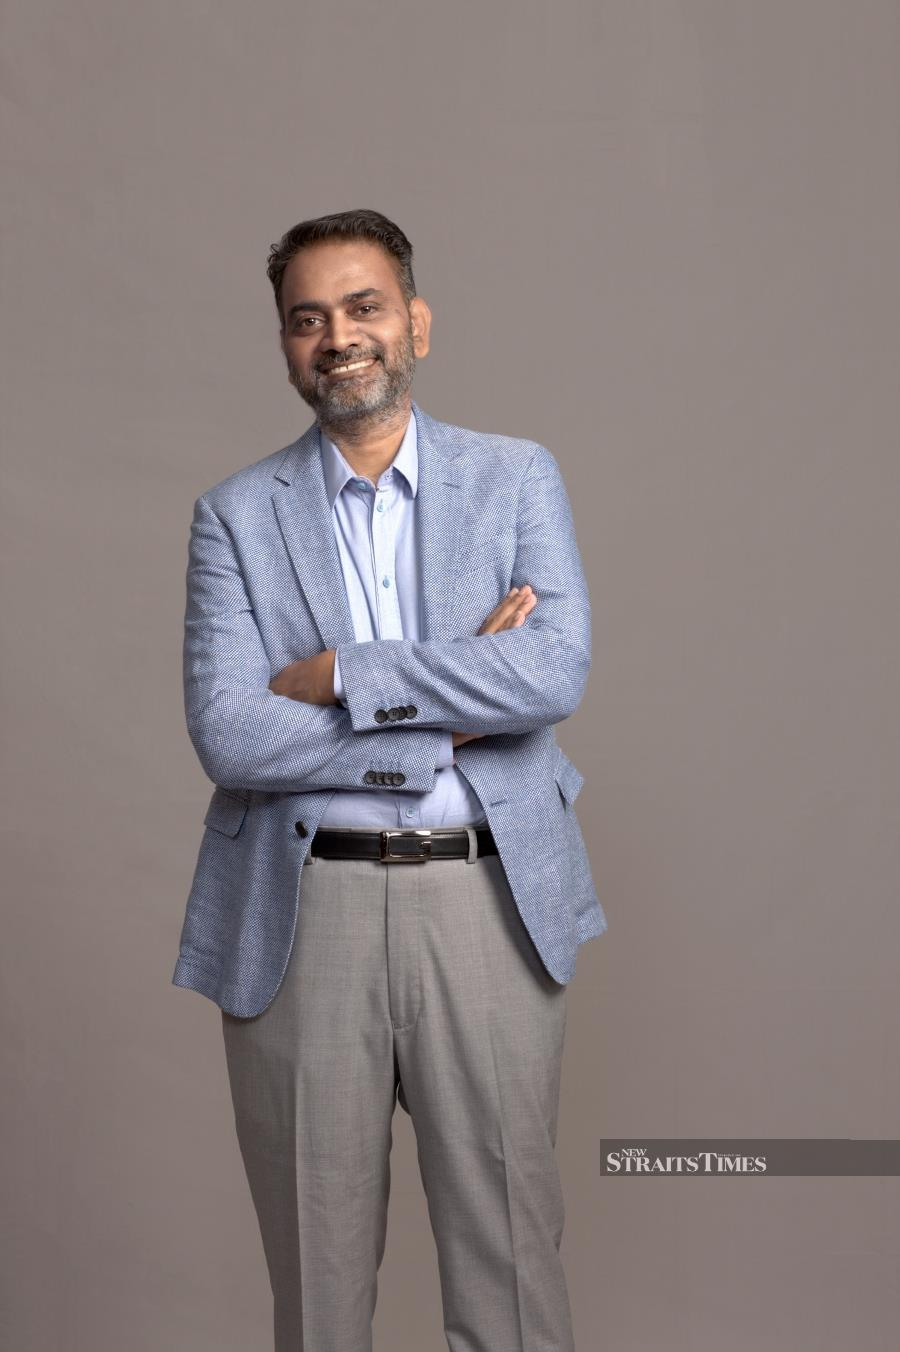 Merchantrade Asia founder and managing director Ramasamy K Veeran said the e-KYC for money changing is another big step in the company's efforts towards digitalisation of services from cash to cashless.